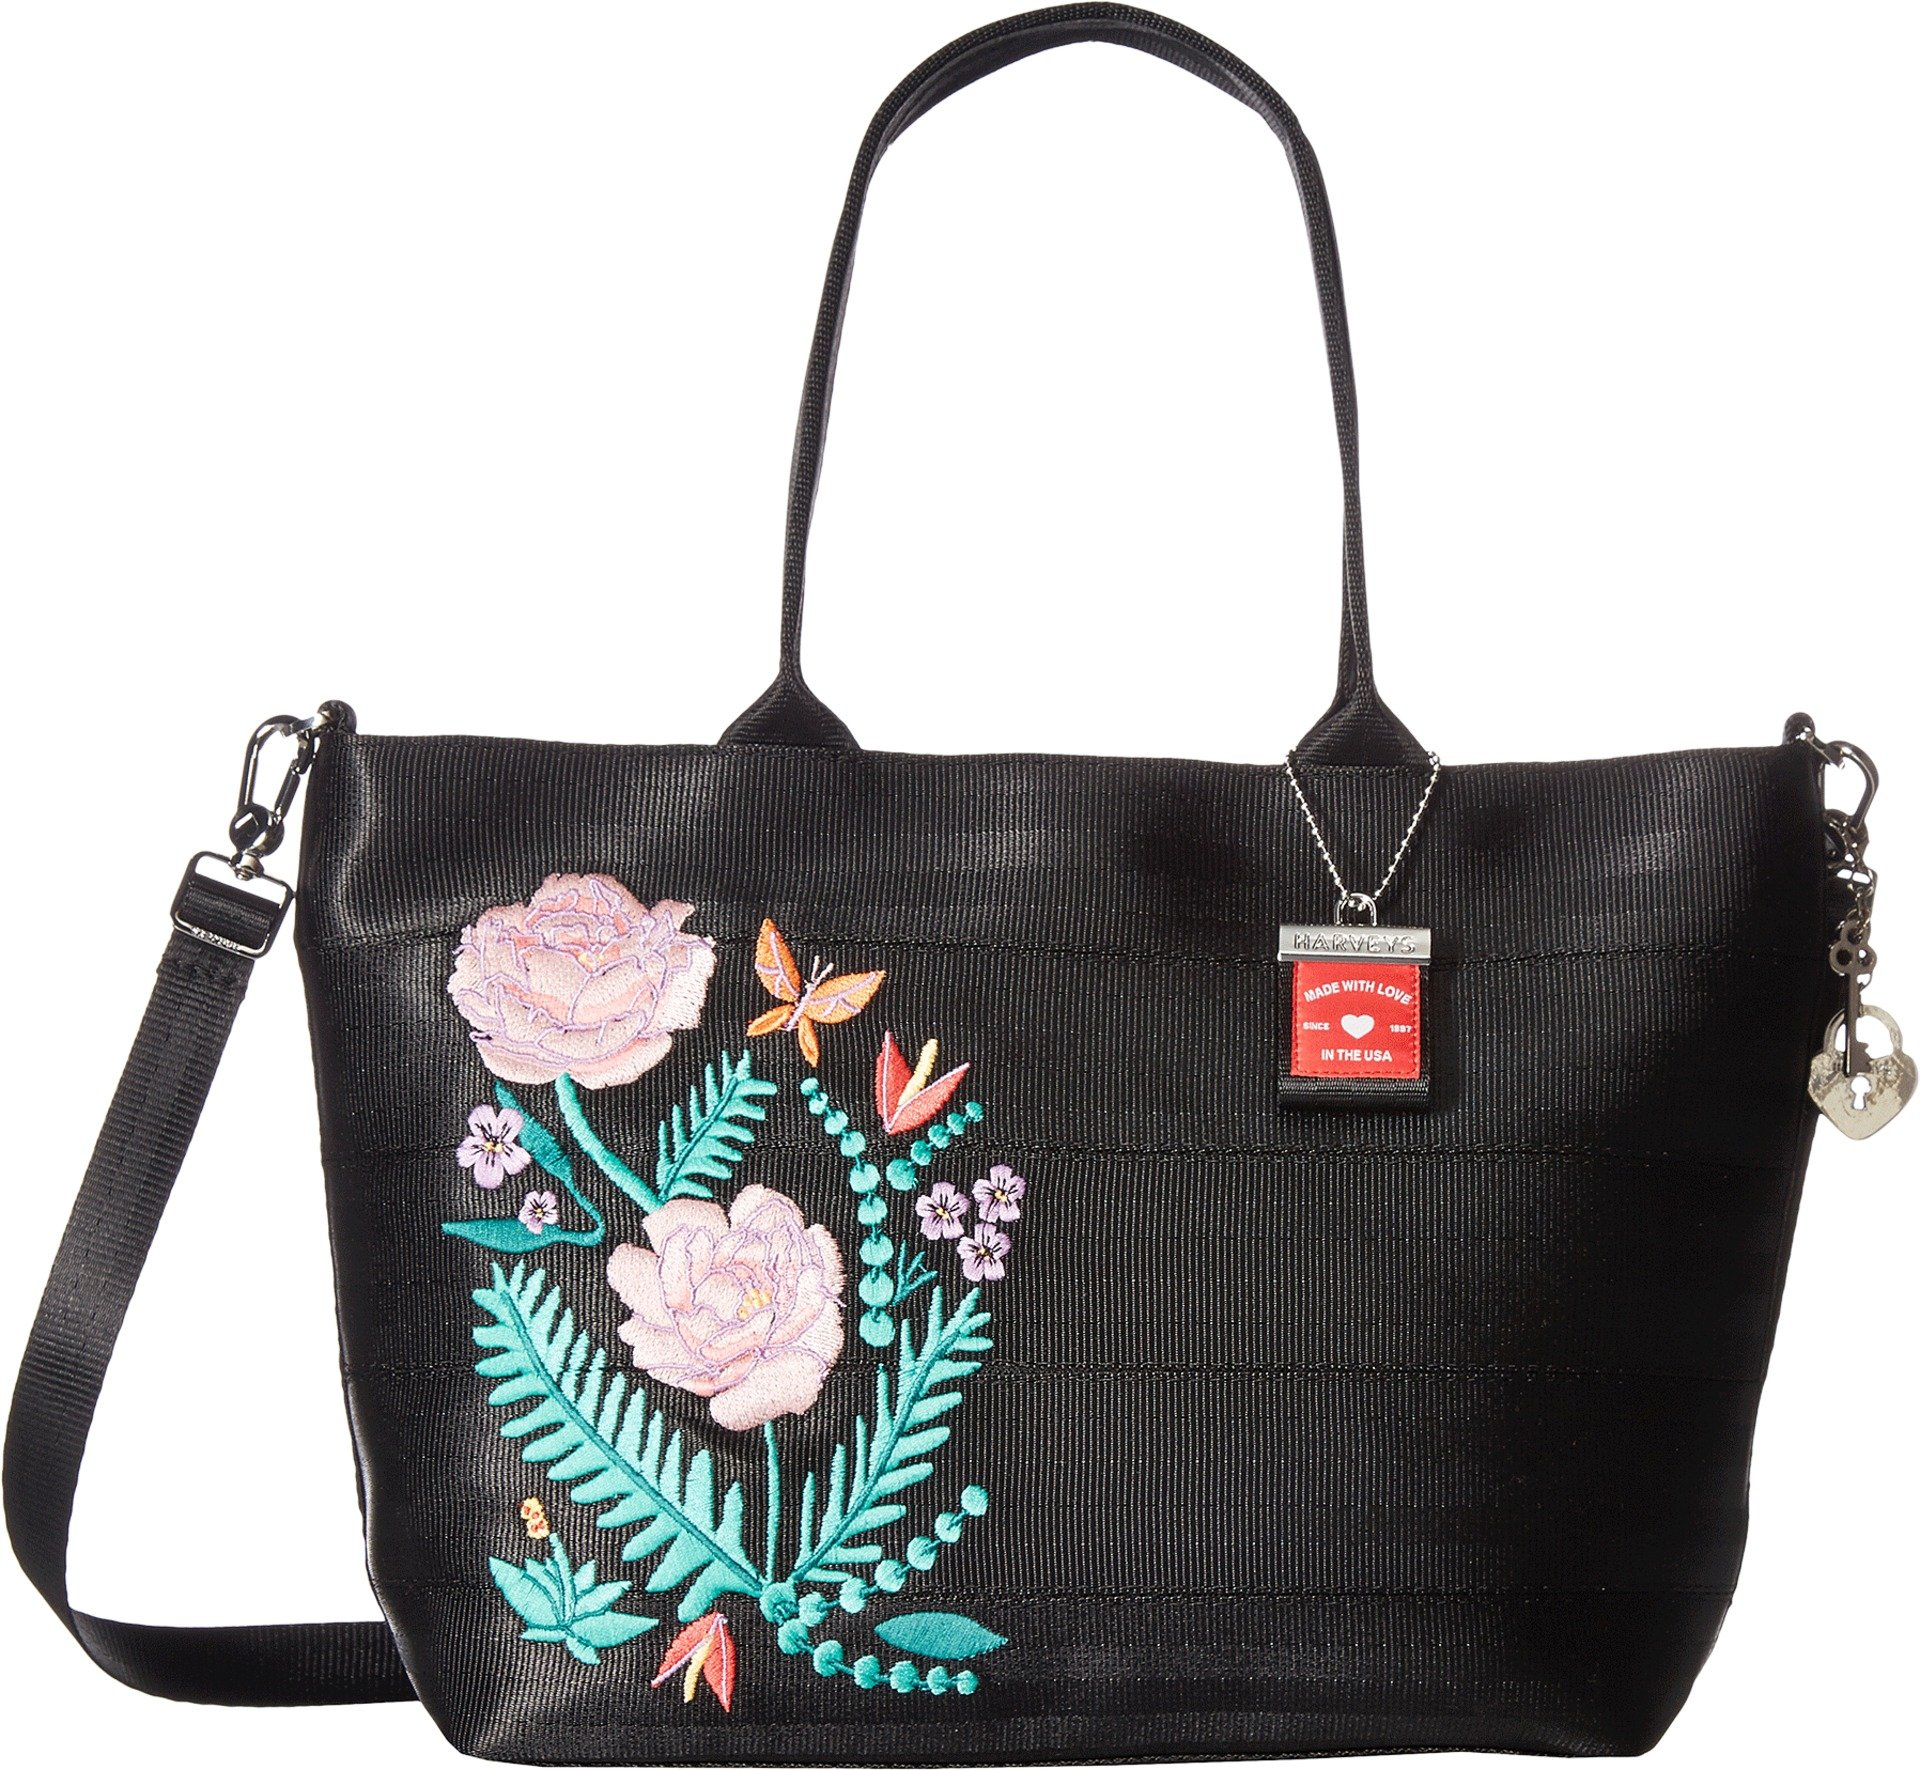 Harveys Seatbelt Bag Women's Mini Streamline Tote Botanical One Size by Harvey's